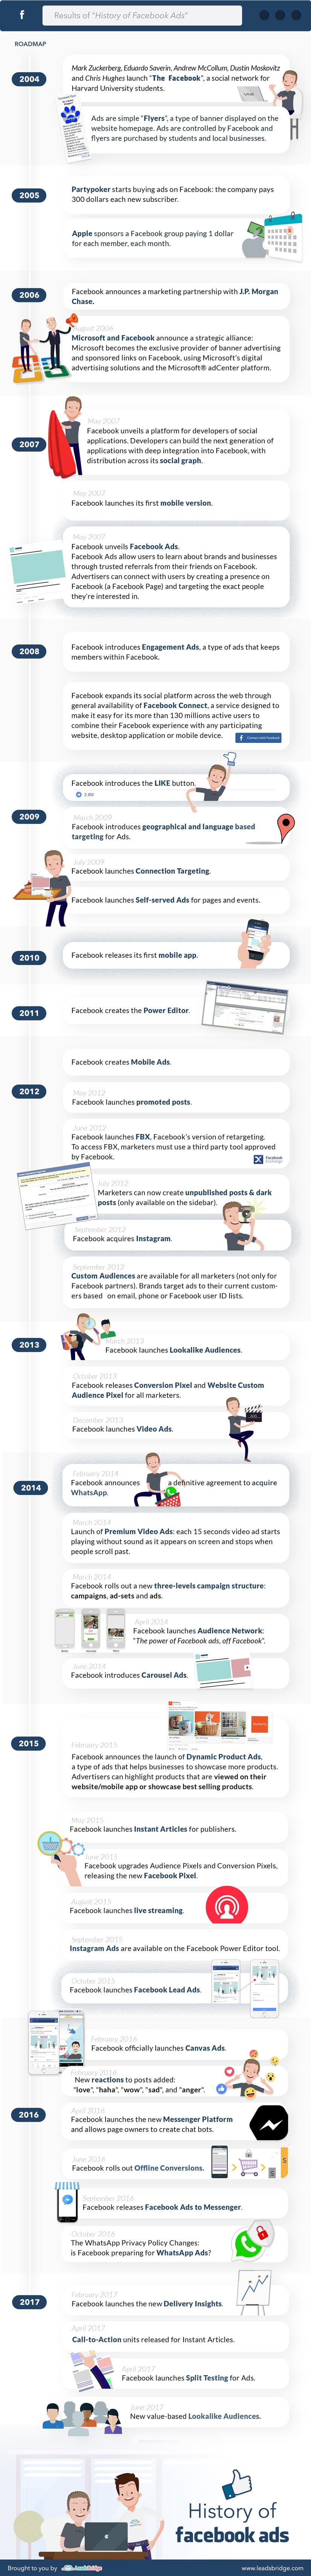 Facebook Ads History